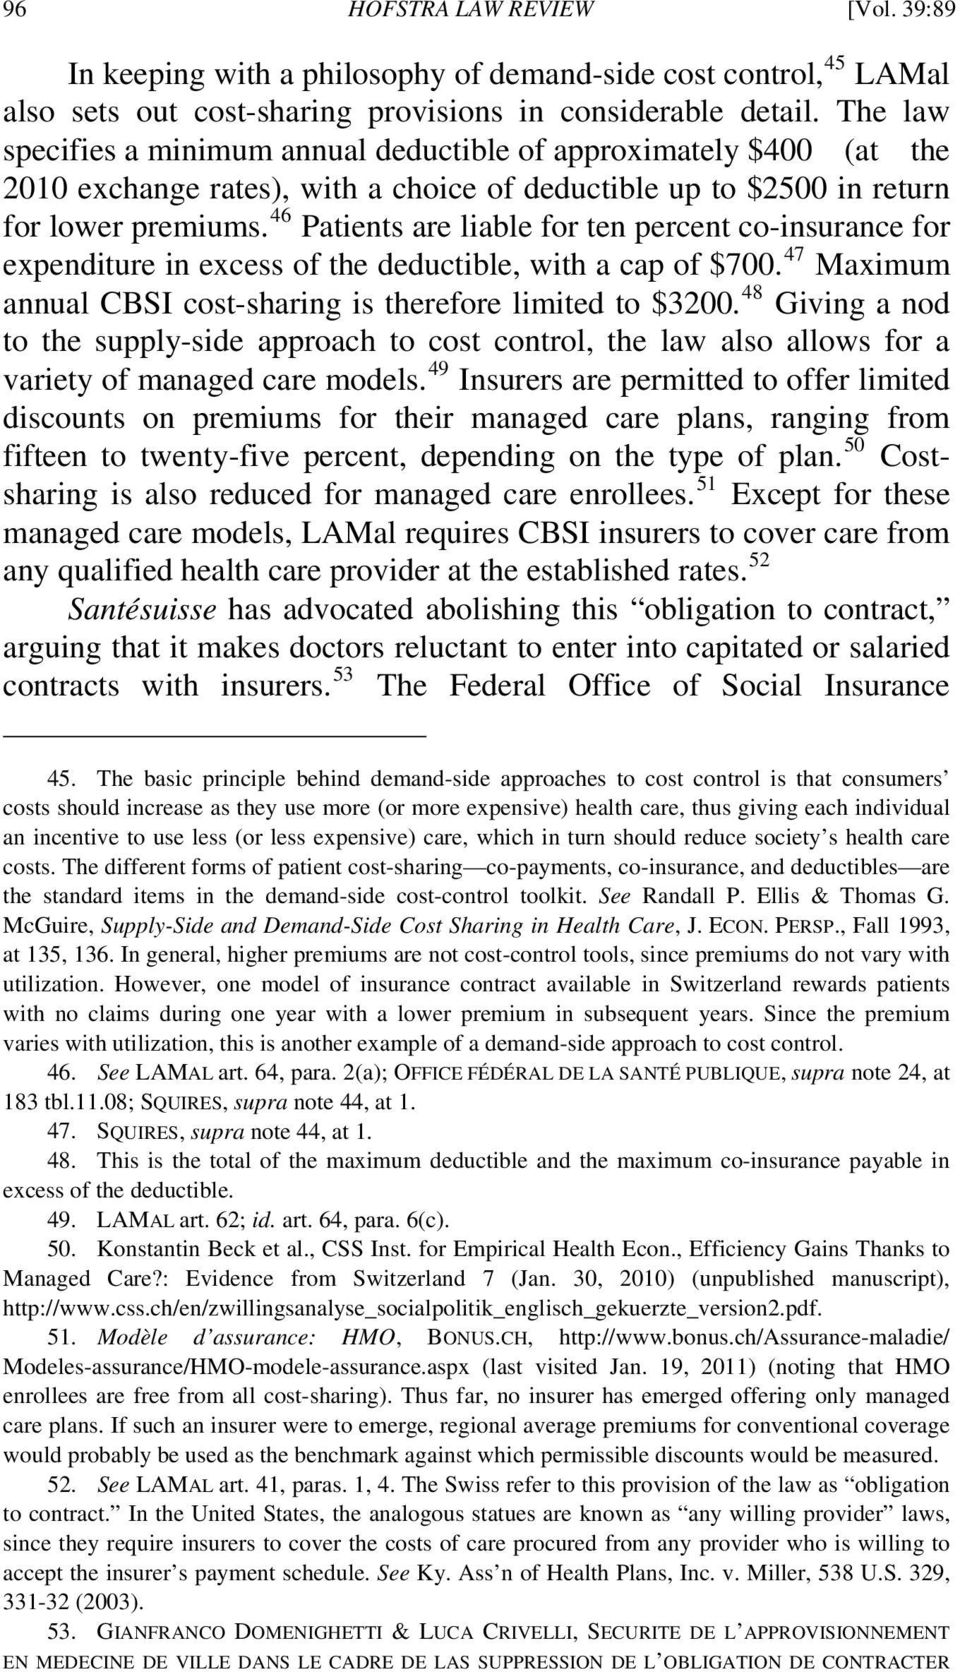 46 Patients are liable for ten percent co-insurance for expenditure in excess of the deductible, with a cap of $700. 47 Maximum annual CBSI cost-sharing is therefore limited to $3200.